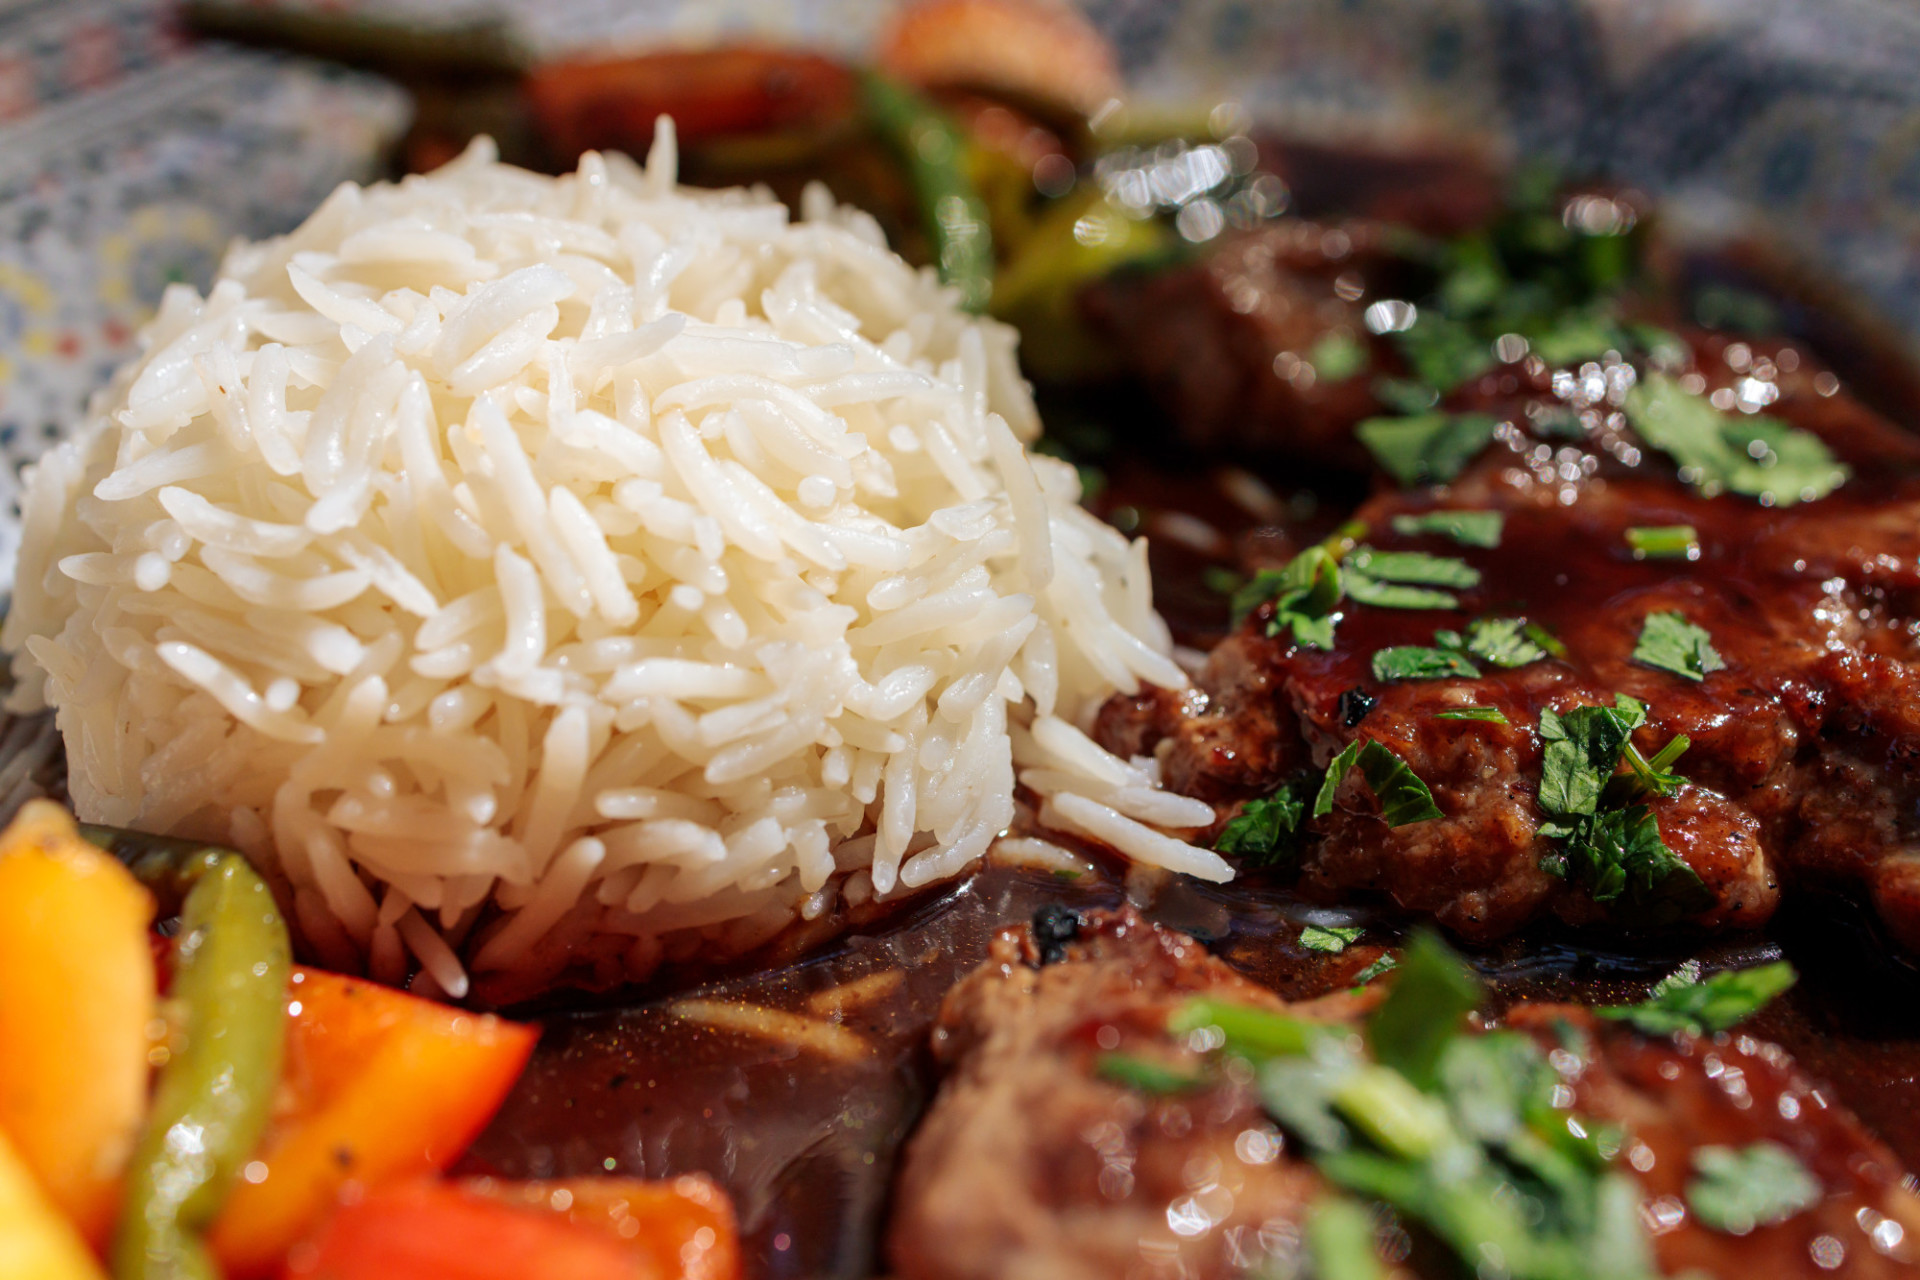 Rice and lamb steaks in an arabic restaurant